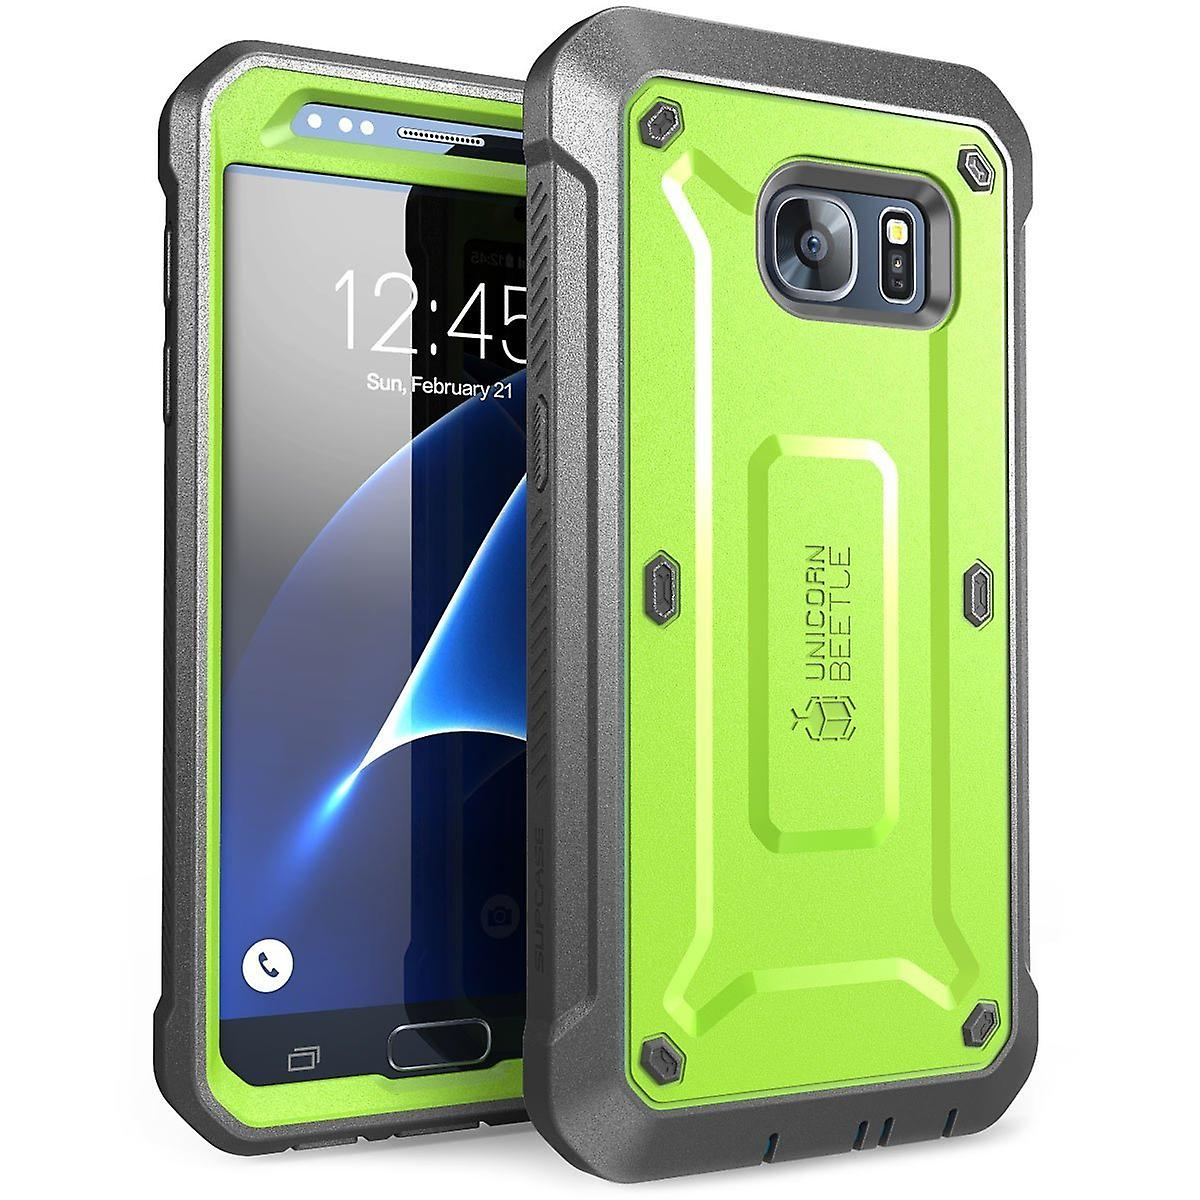 Samsung Galaxy S7 Case, SUPCASE,Unicorn Beetle Pro Series, Full-body Built-in Screen, S7 Case, Galaxy S7 Case-Green/Gray